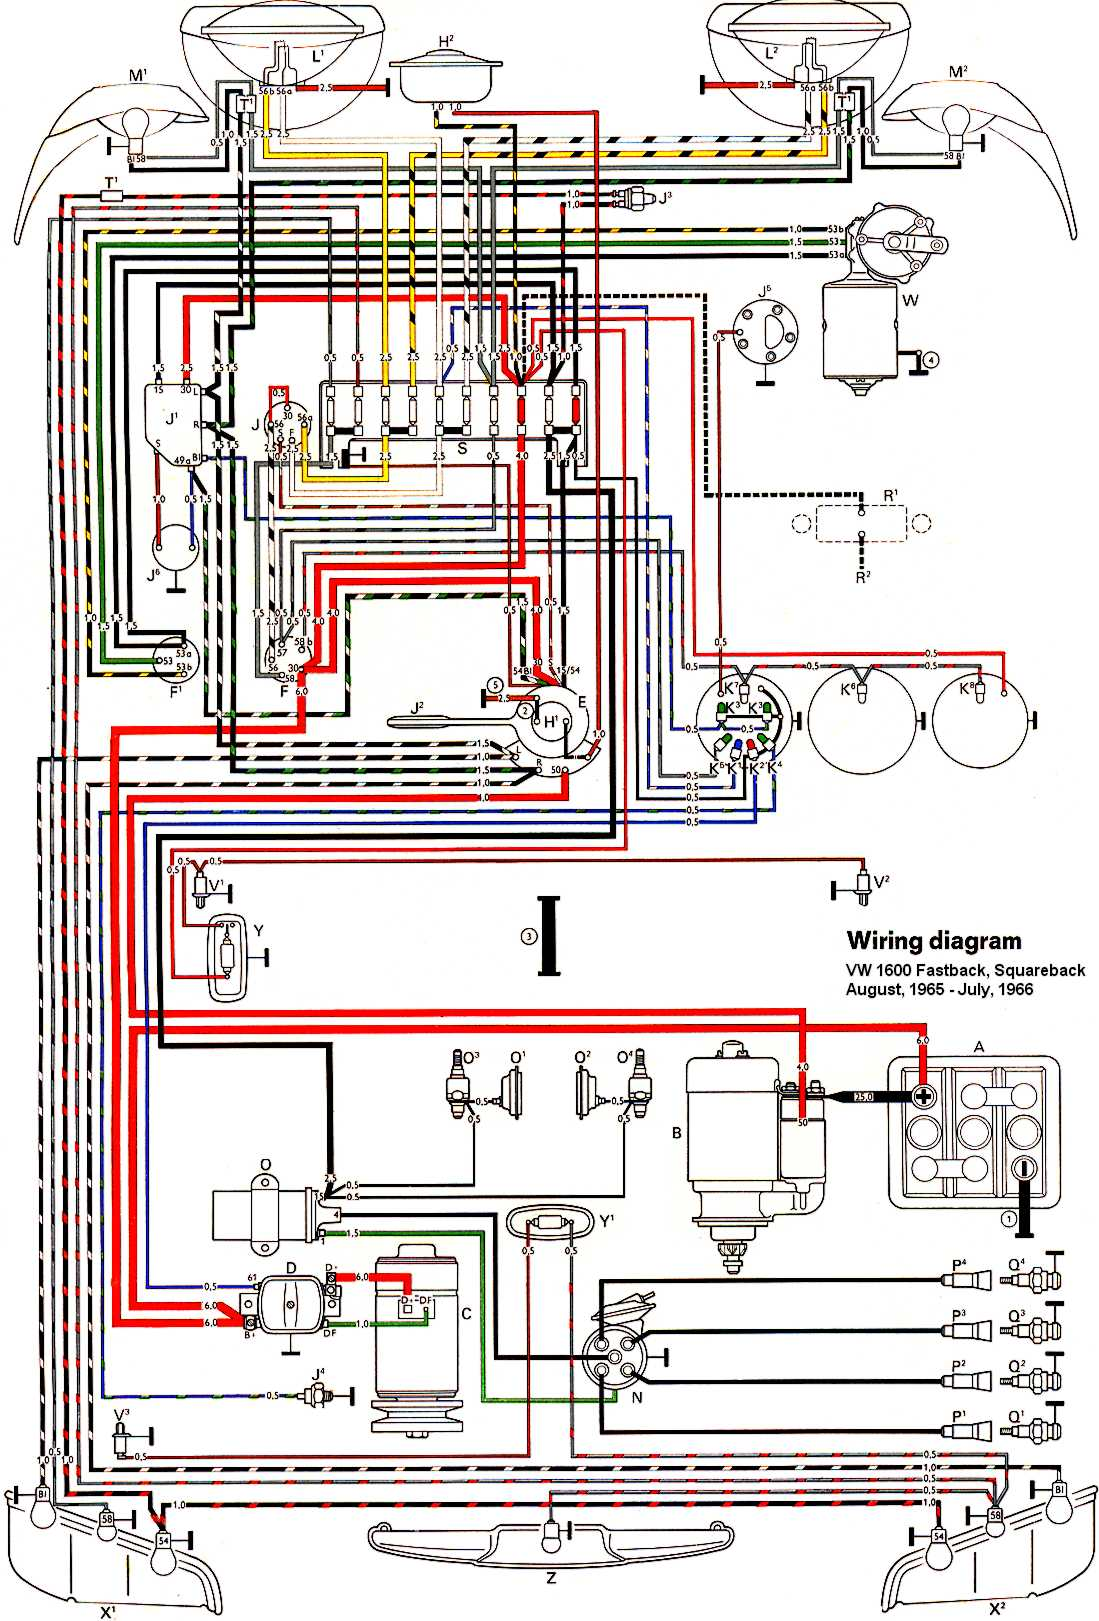 volkswagen t wiring diagram volkswagen wiring diagrams online 1000 images about vw on vw t3 wiring diagram